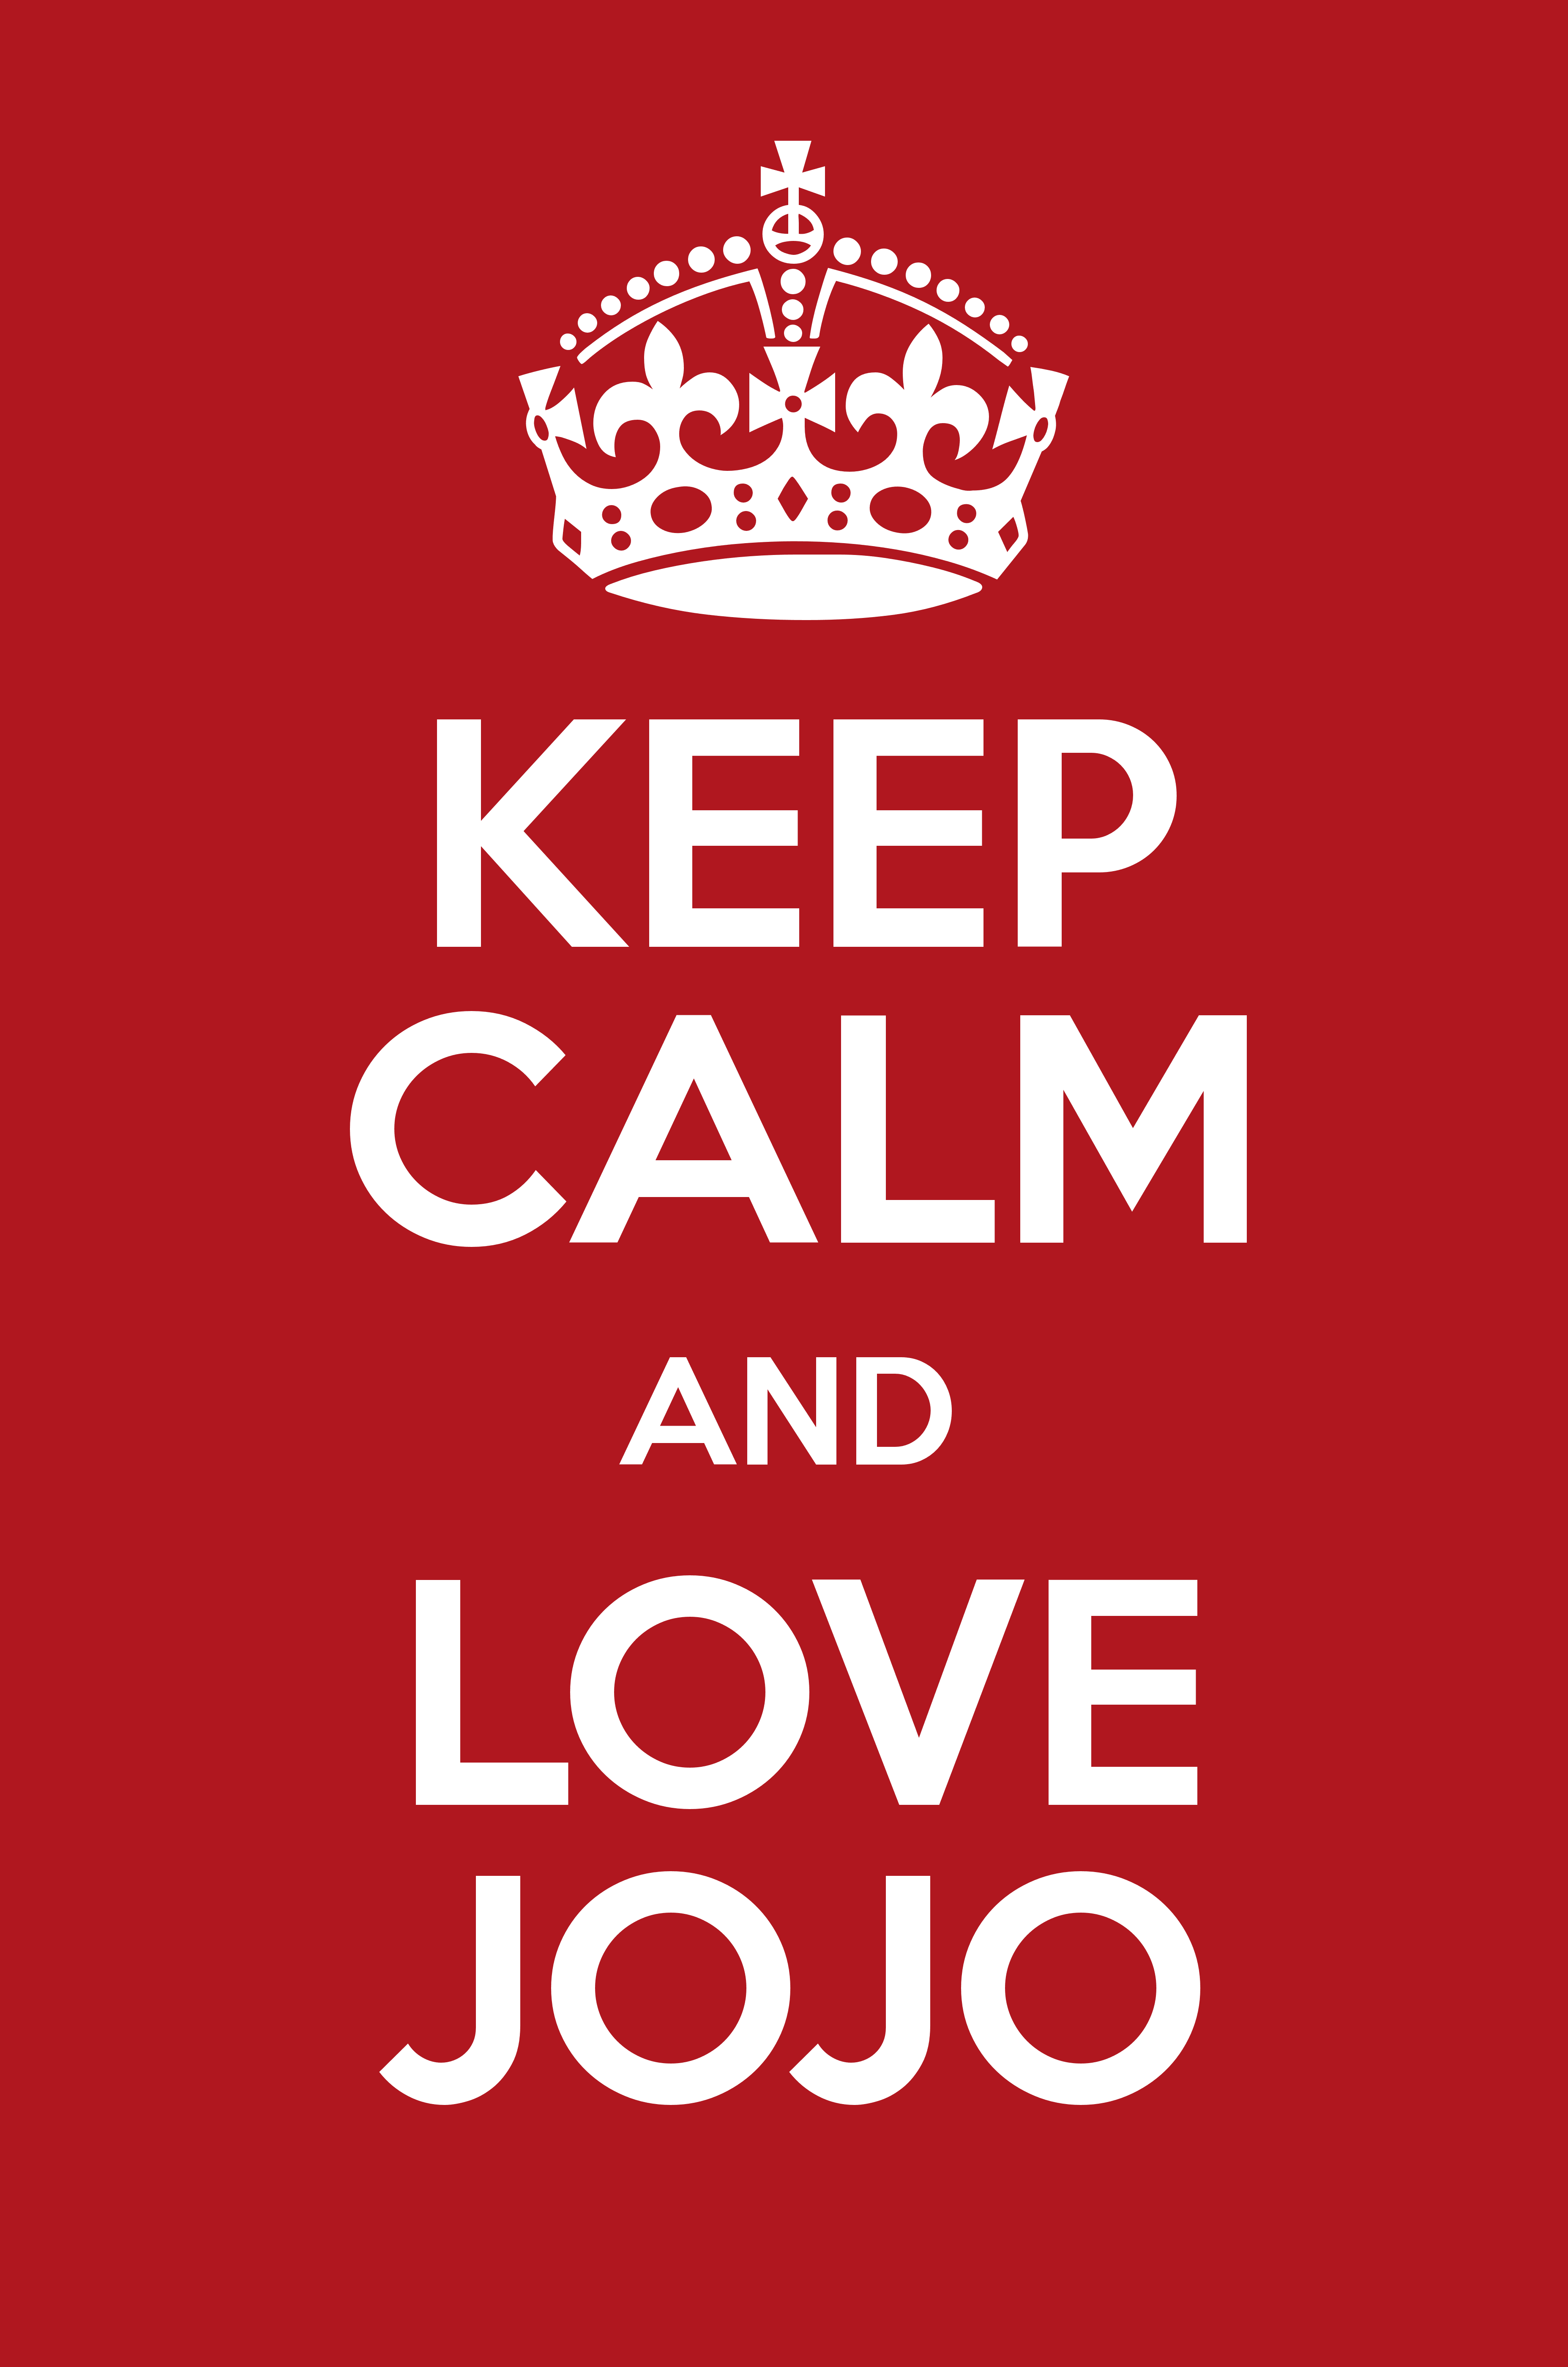 KEEP CALM AND LOVE JOJO - Keep Calm and Posters Generator, Maker For